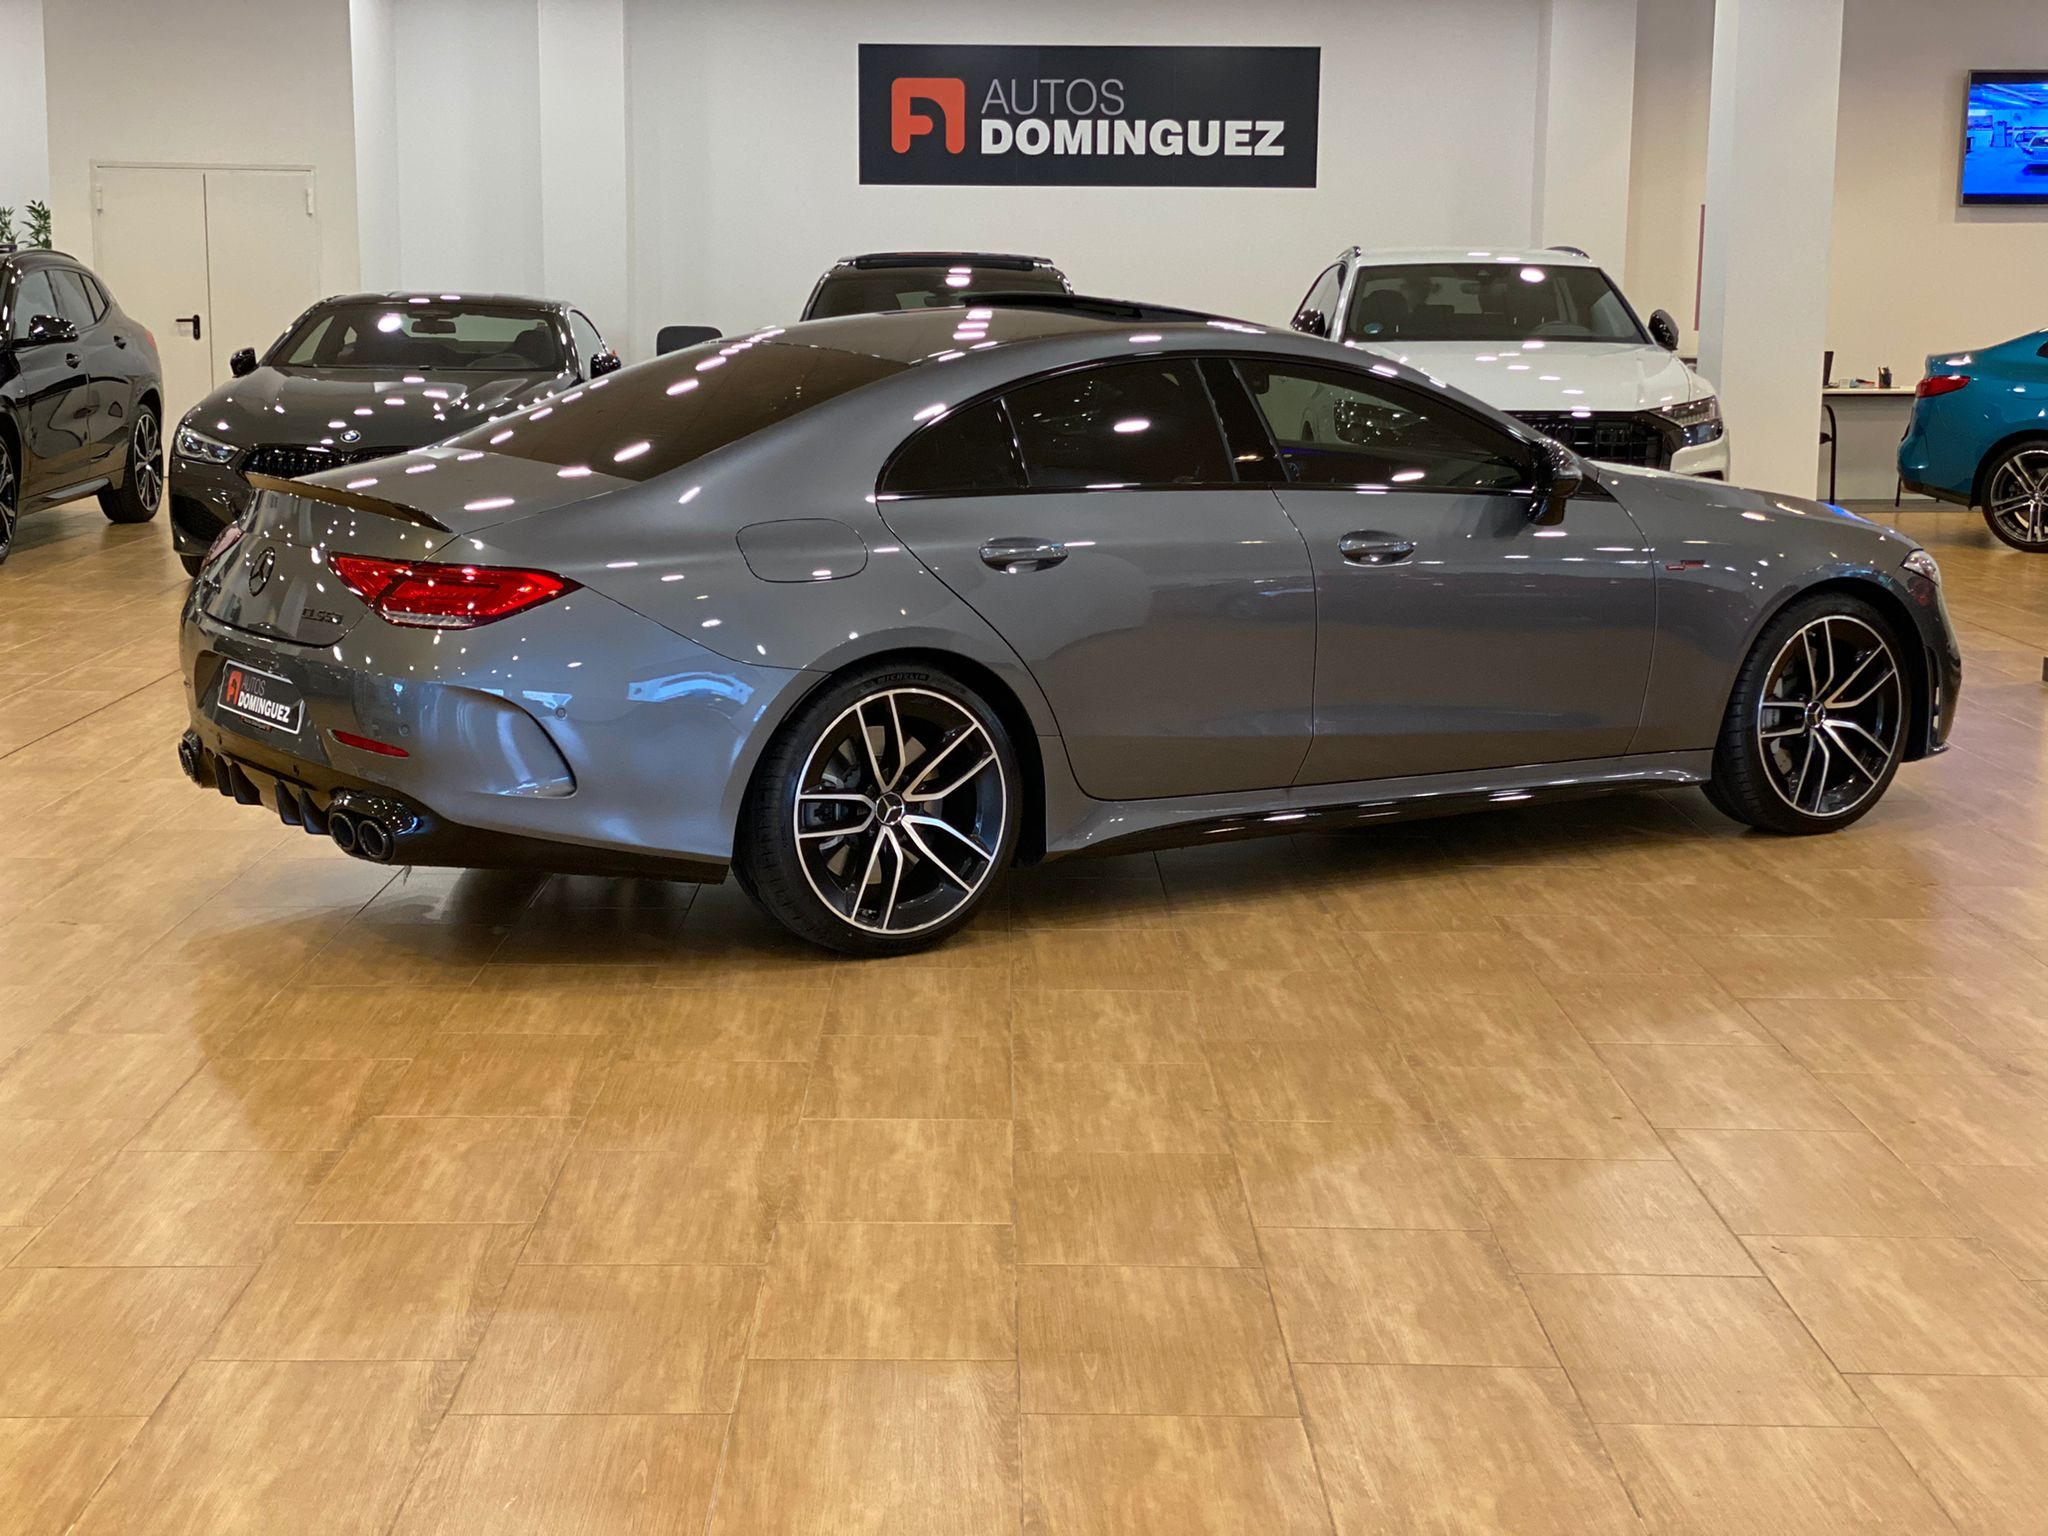 MERCEDES-AMG CLS 53 EQ 435 CV 4MATIC+ 8